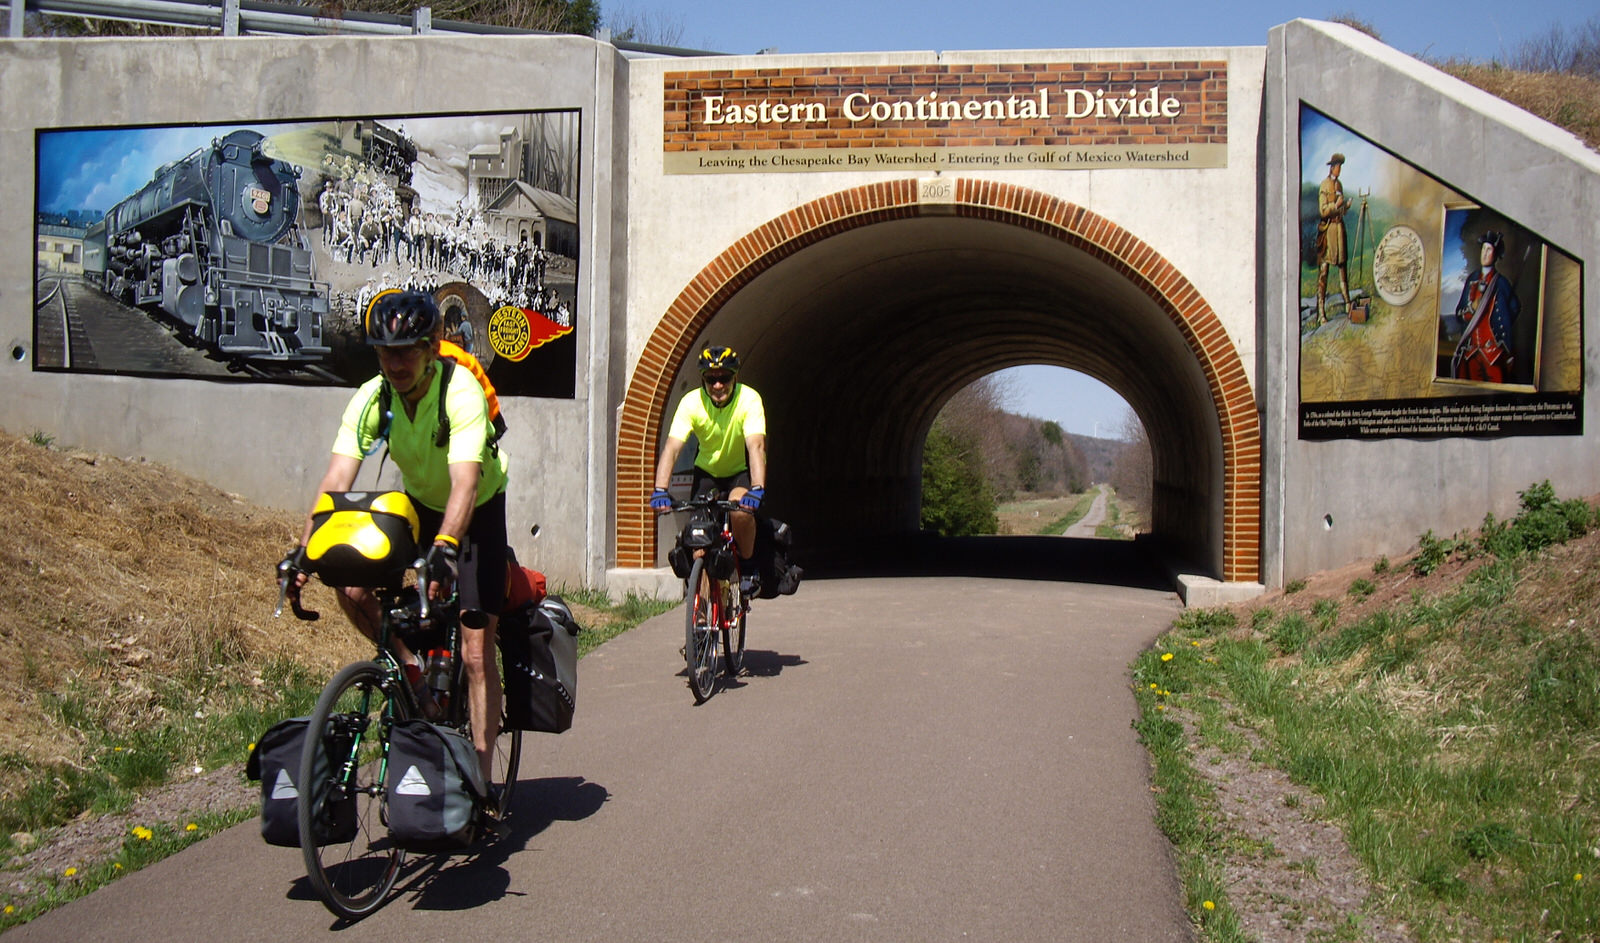 photo: The Great Allegheny Passage crosses the eastern continental divide as it passes under a road. Photo by Mary Shaw.